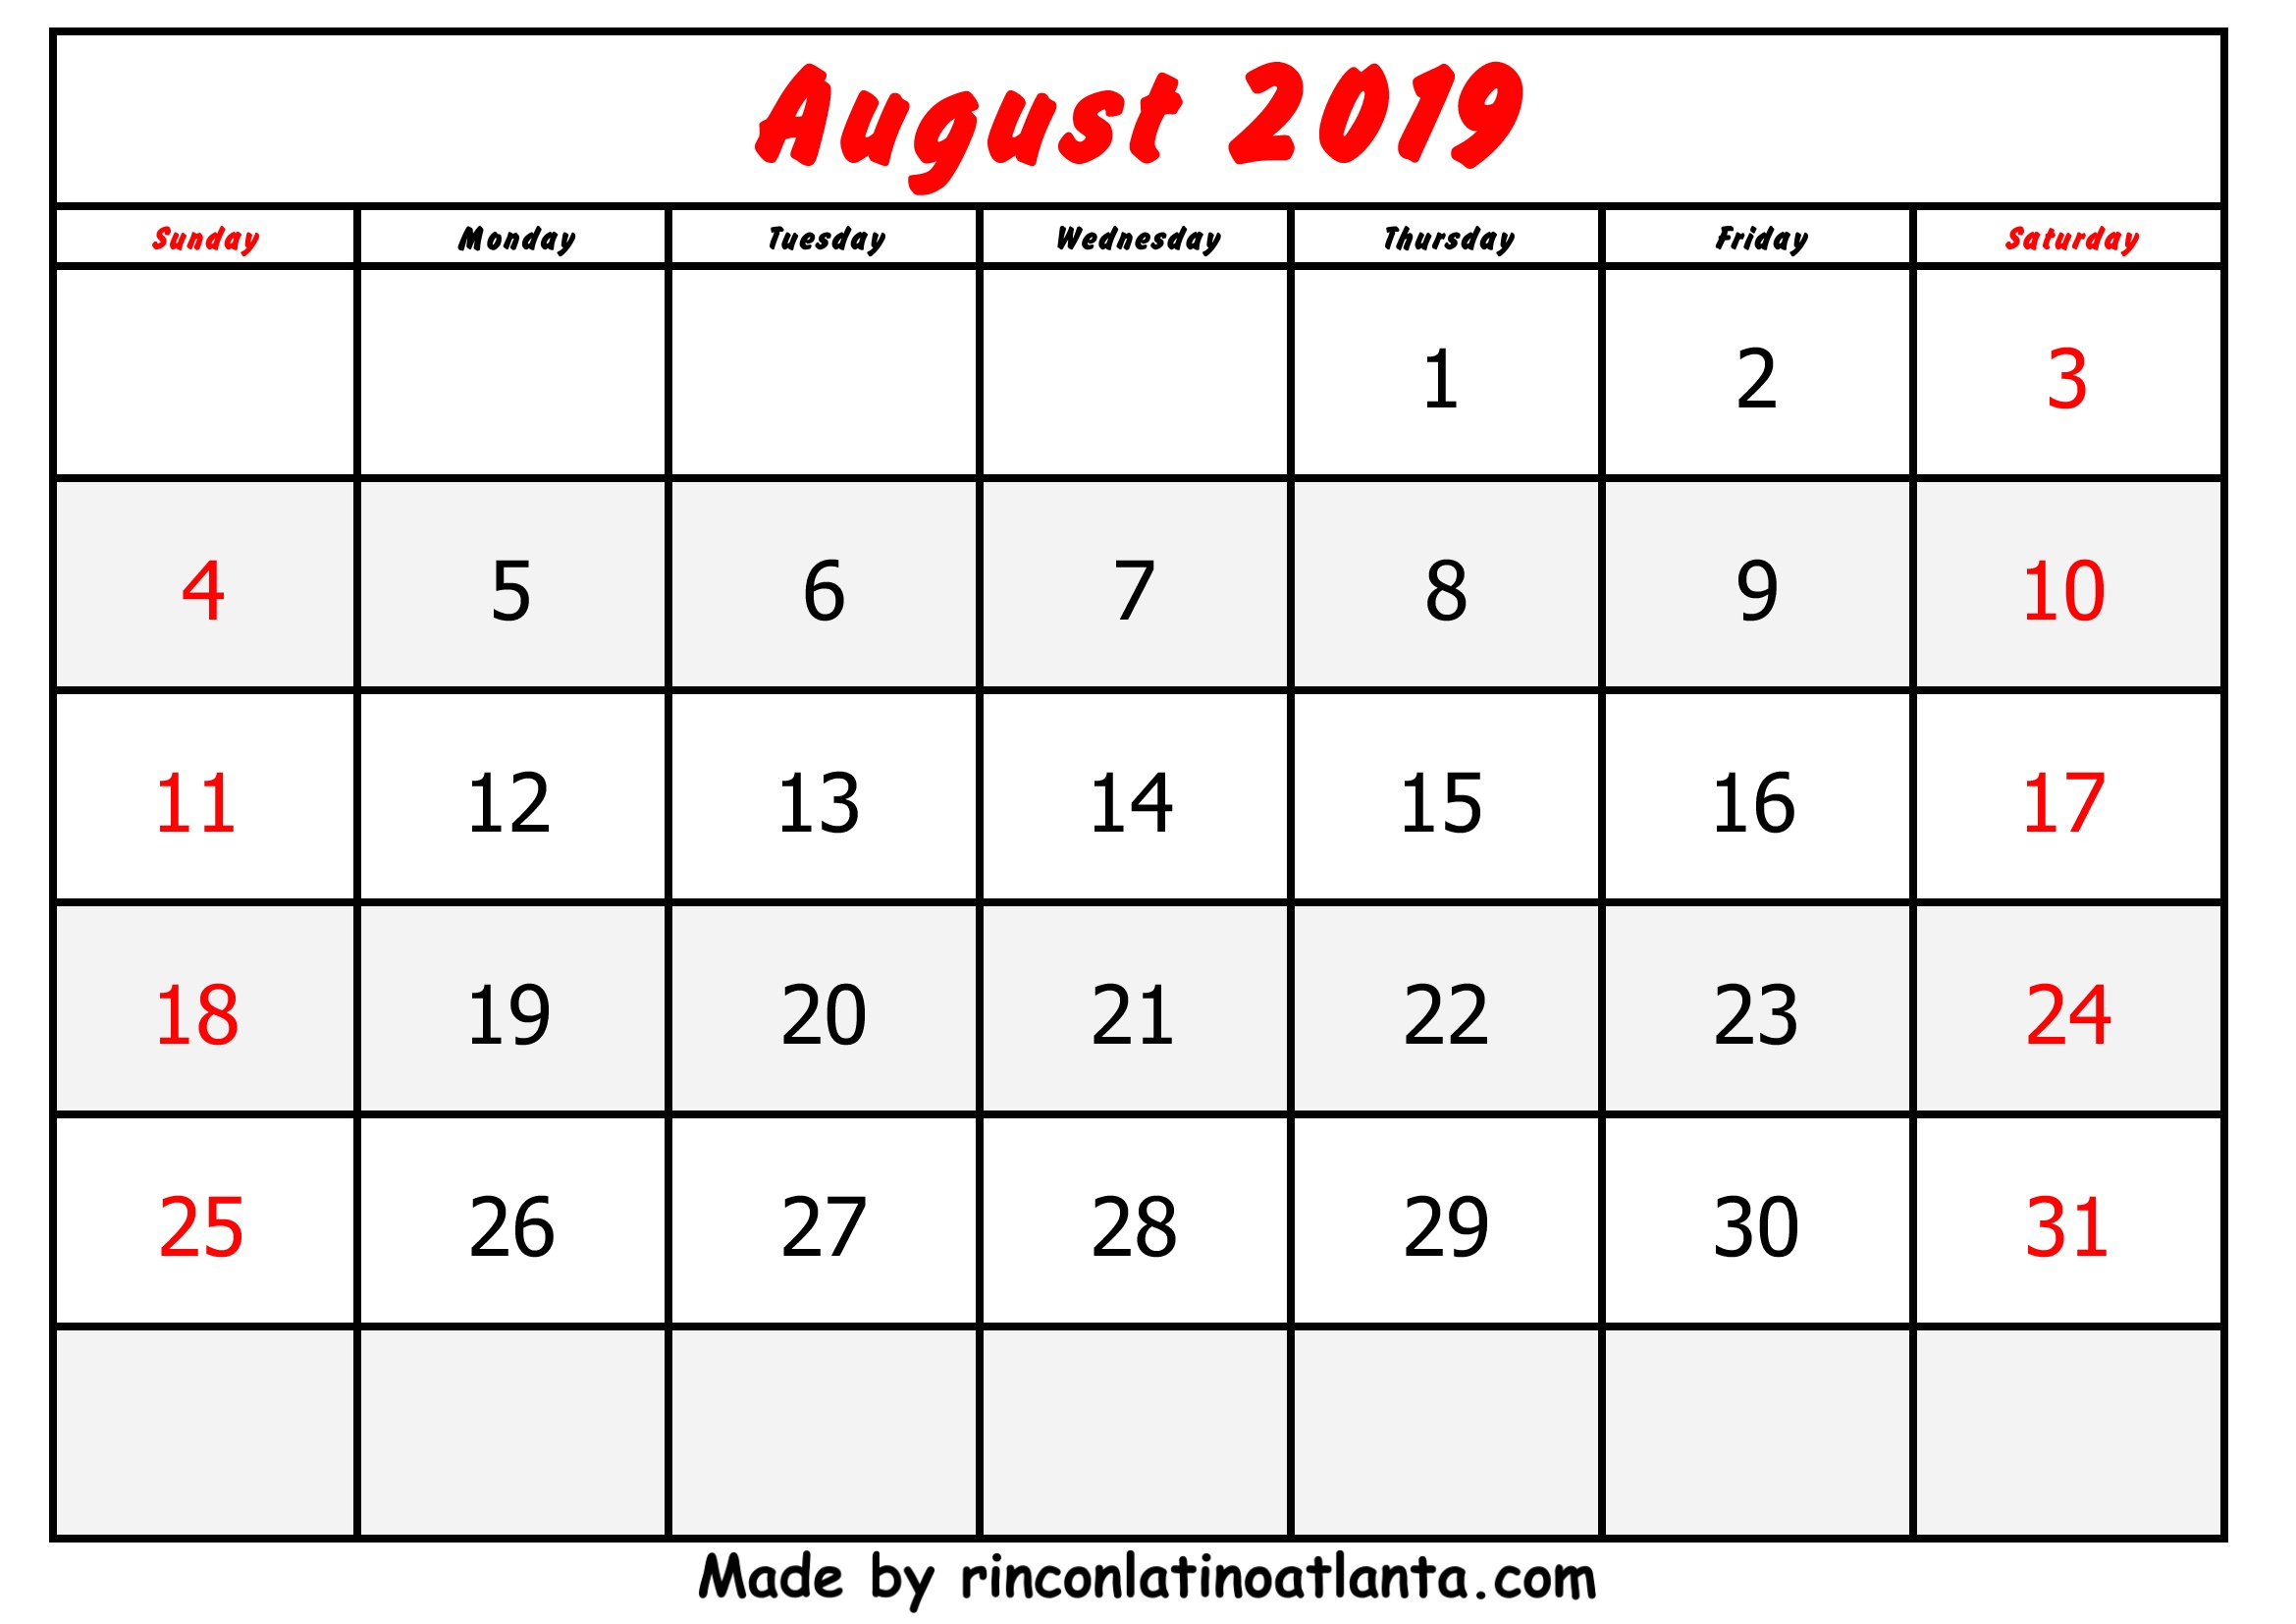 August Calendar 2019 Printable Free Simple | Calendar Template Printable